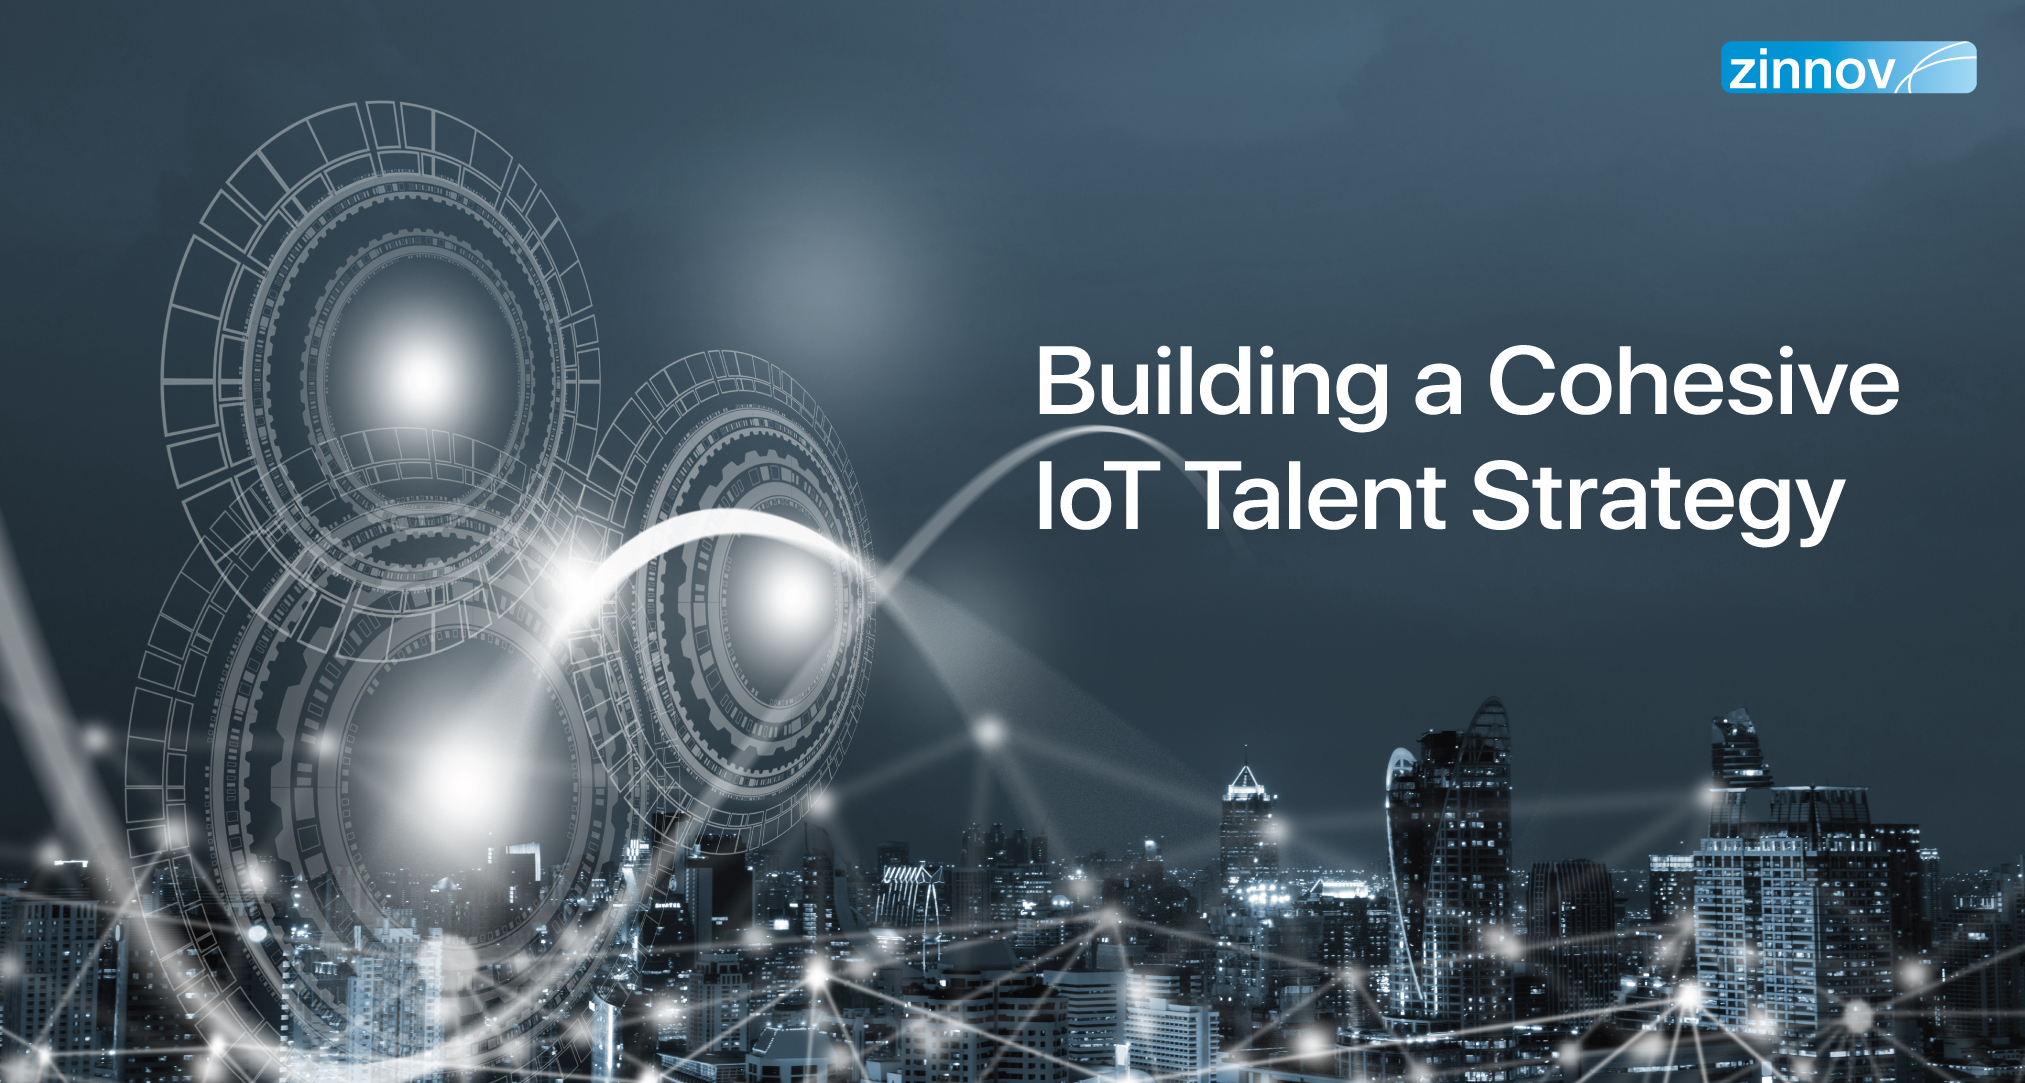 IoT talent strategy